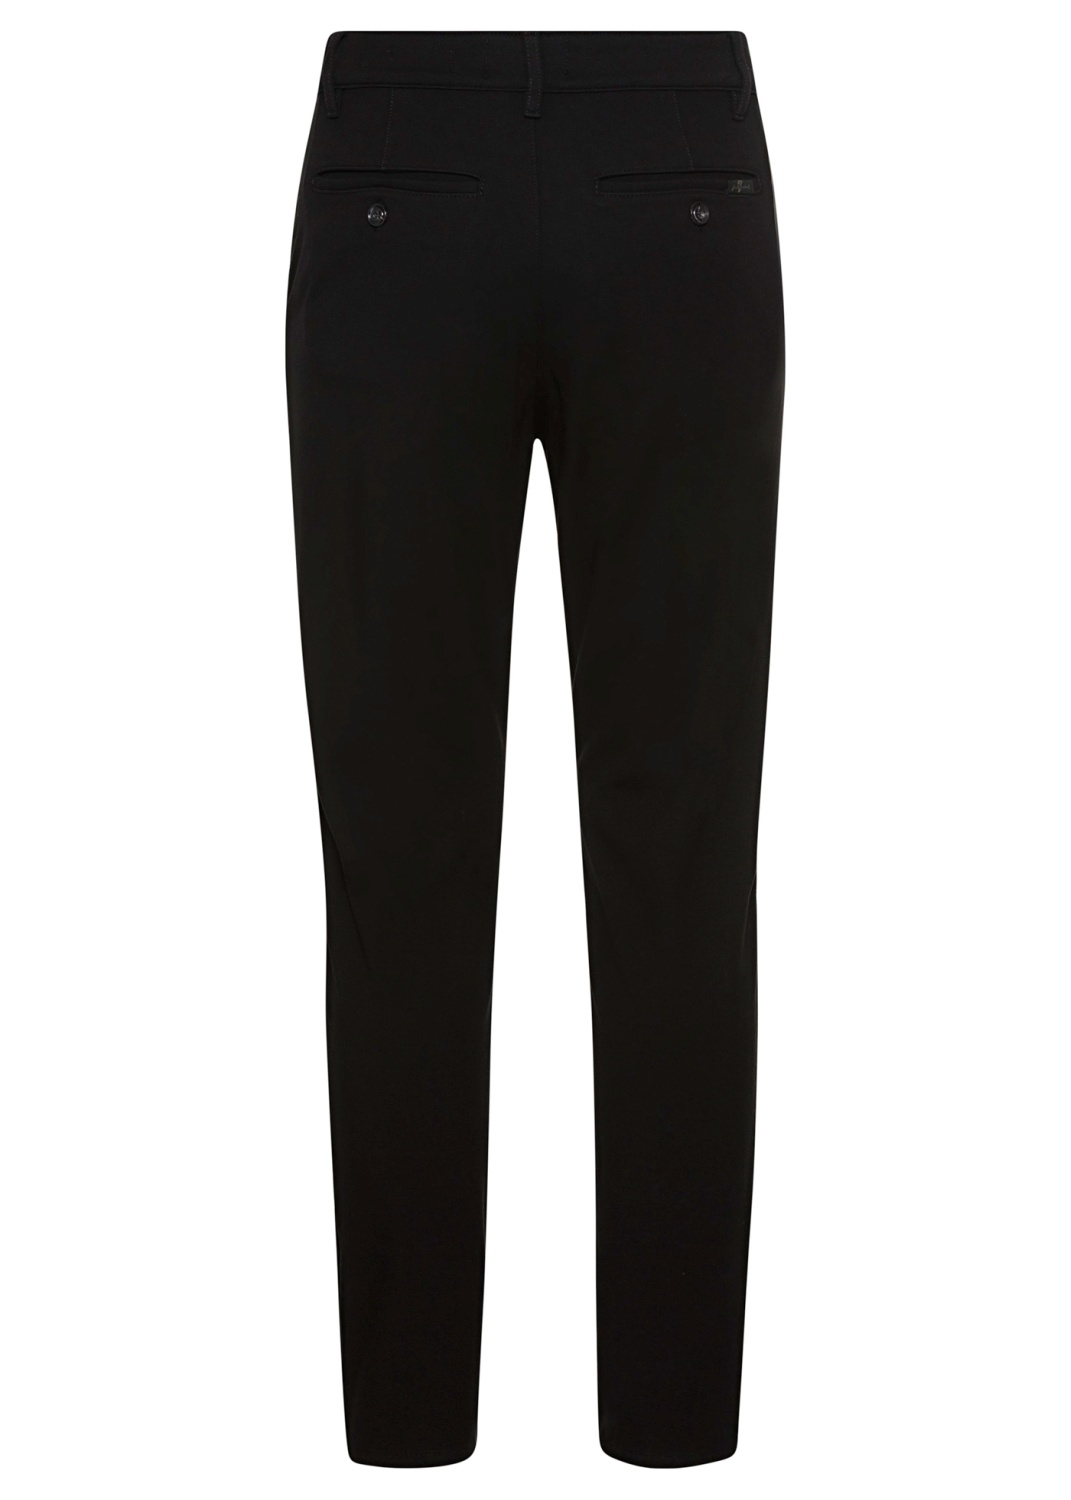 TRAVEL CHINO Double Knit  Black image number 1